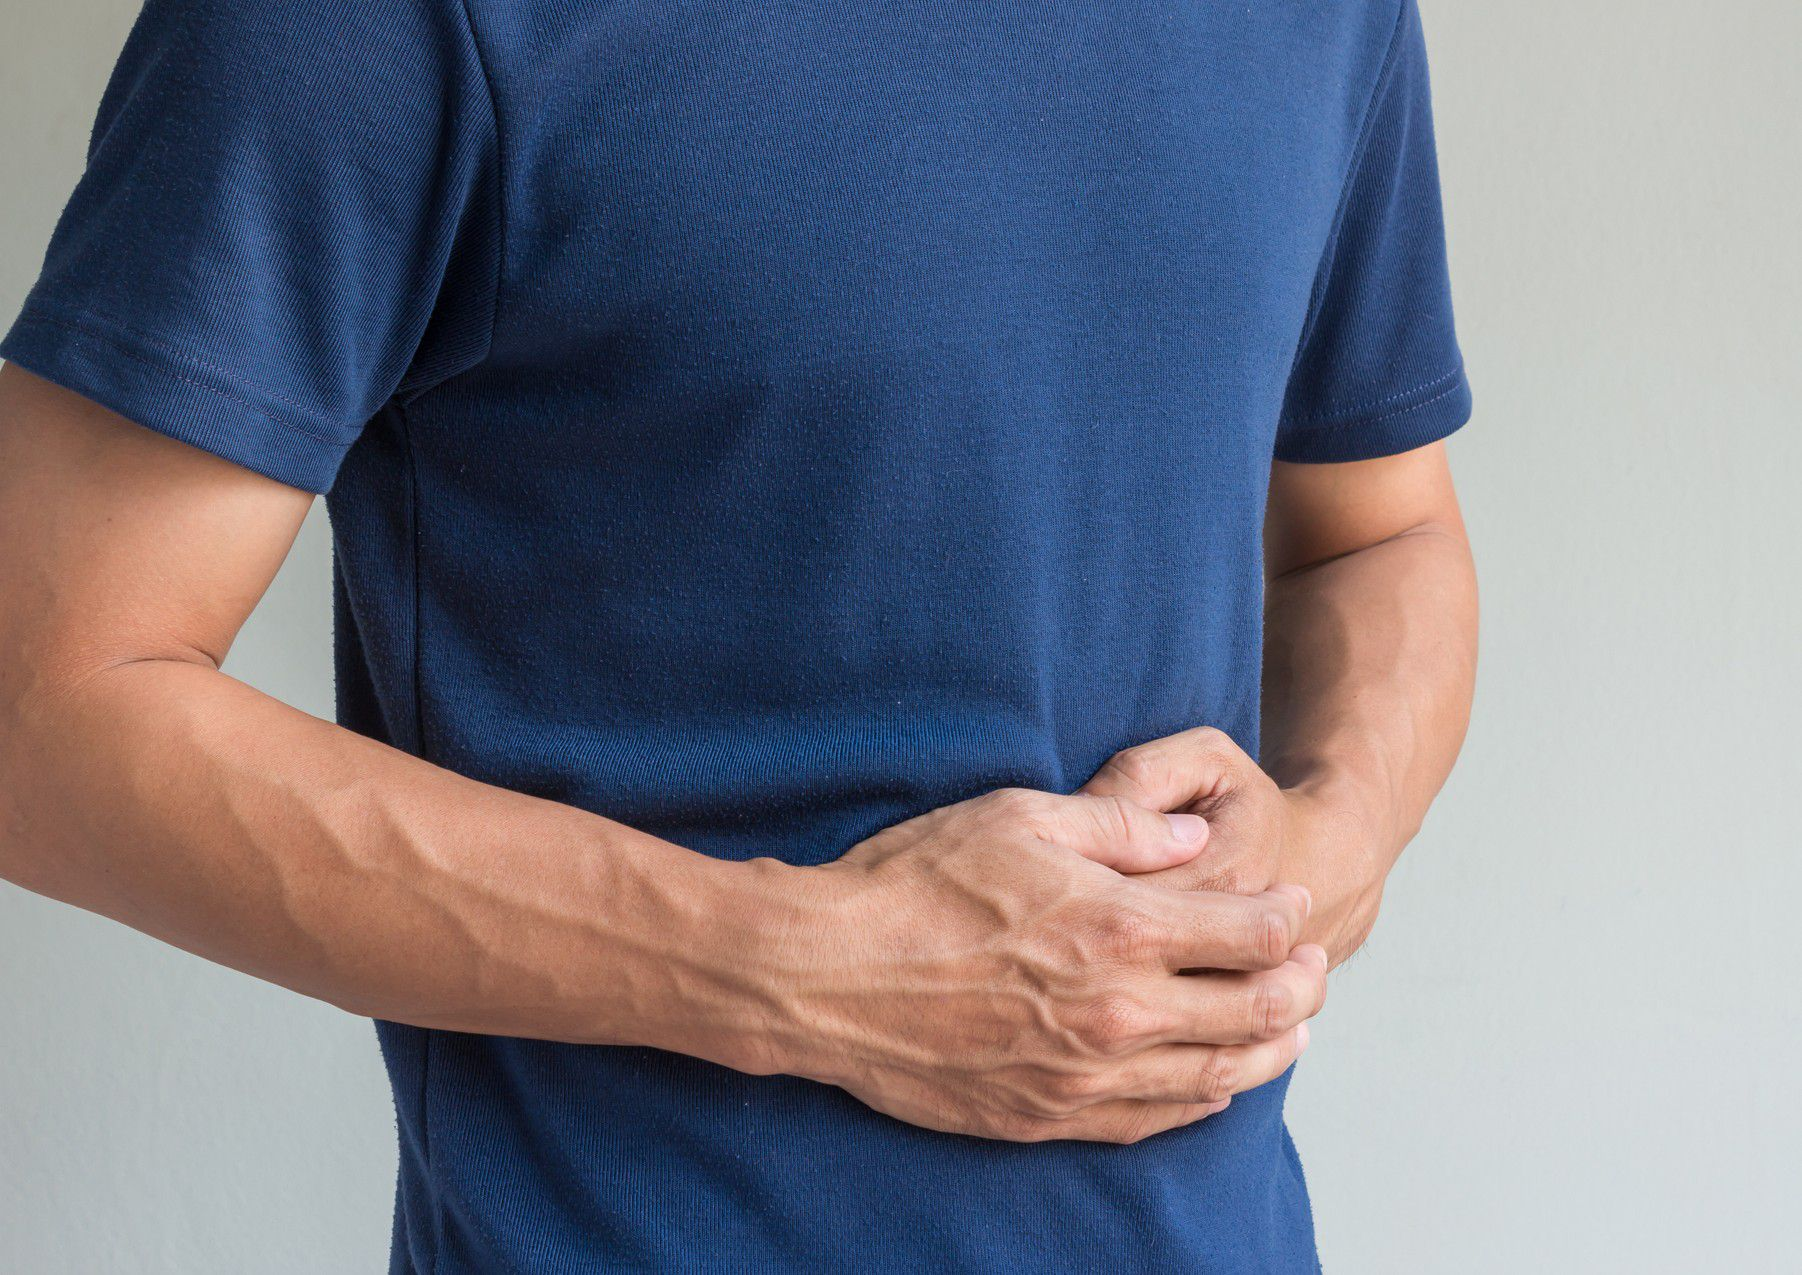 Case study: Patient counters colitis with worms